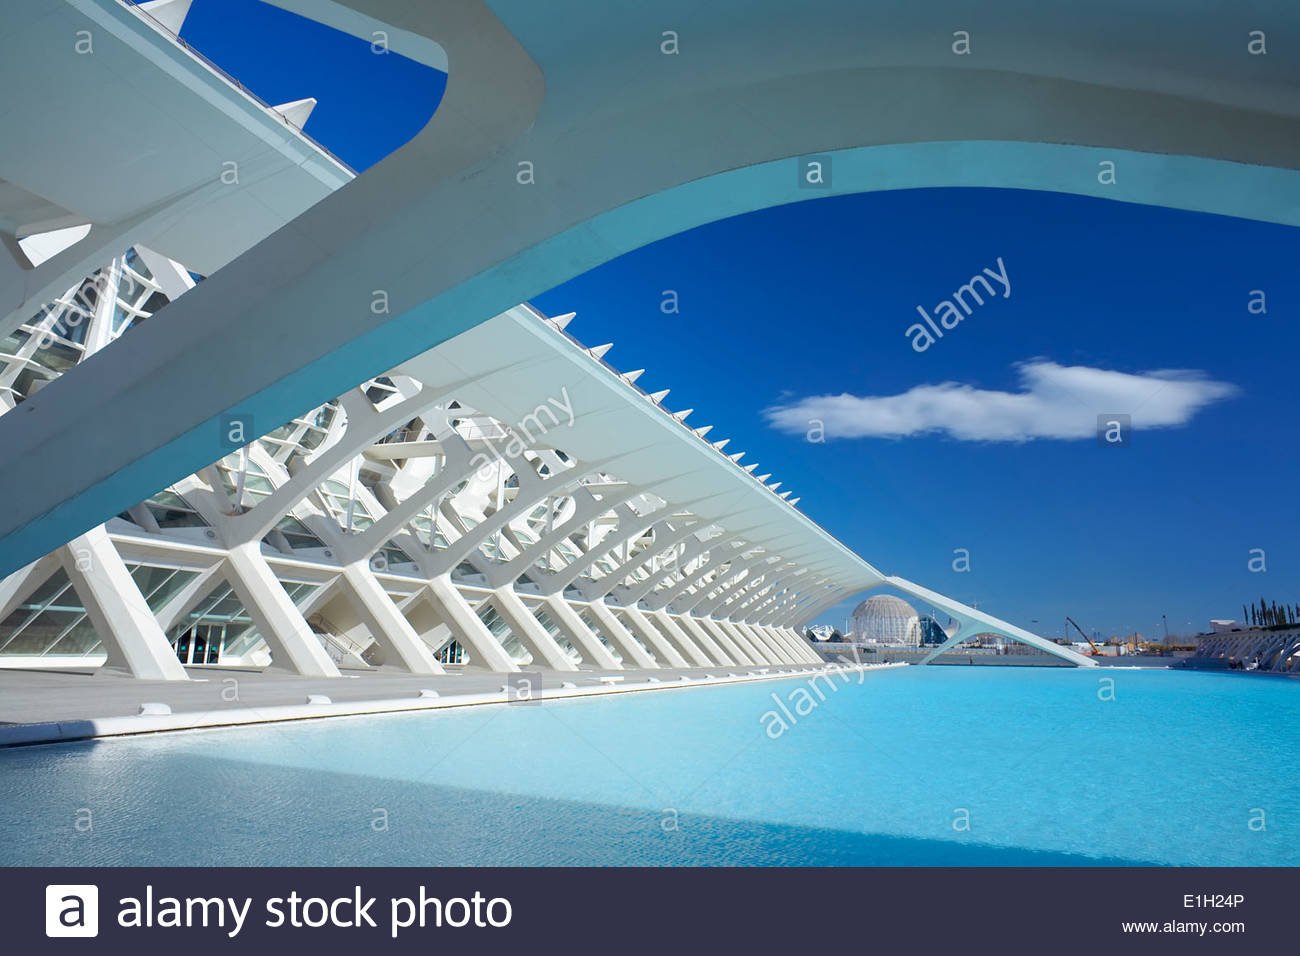 Architectural detail of City of Arts and Sciences, Valencia, Spain Stock Photo